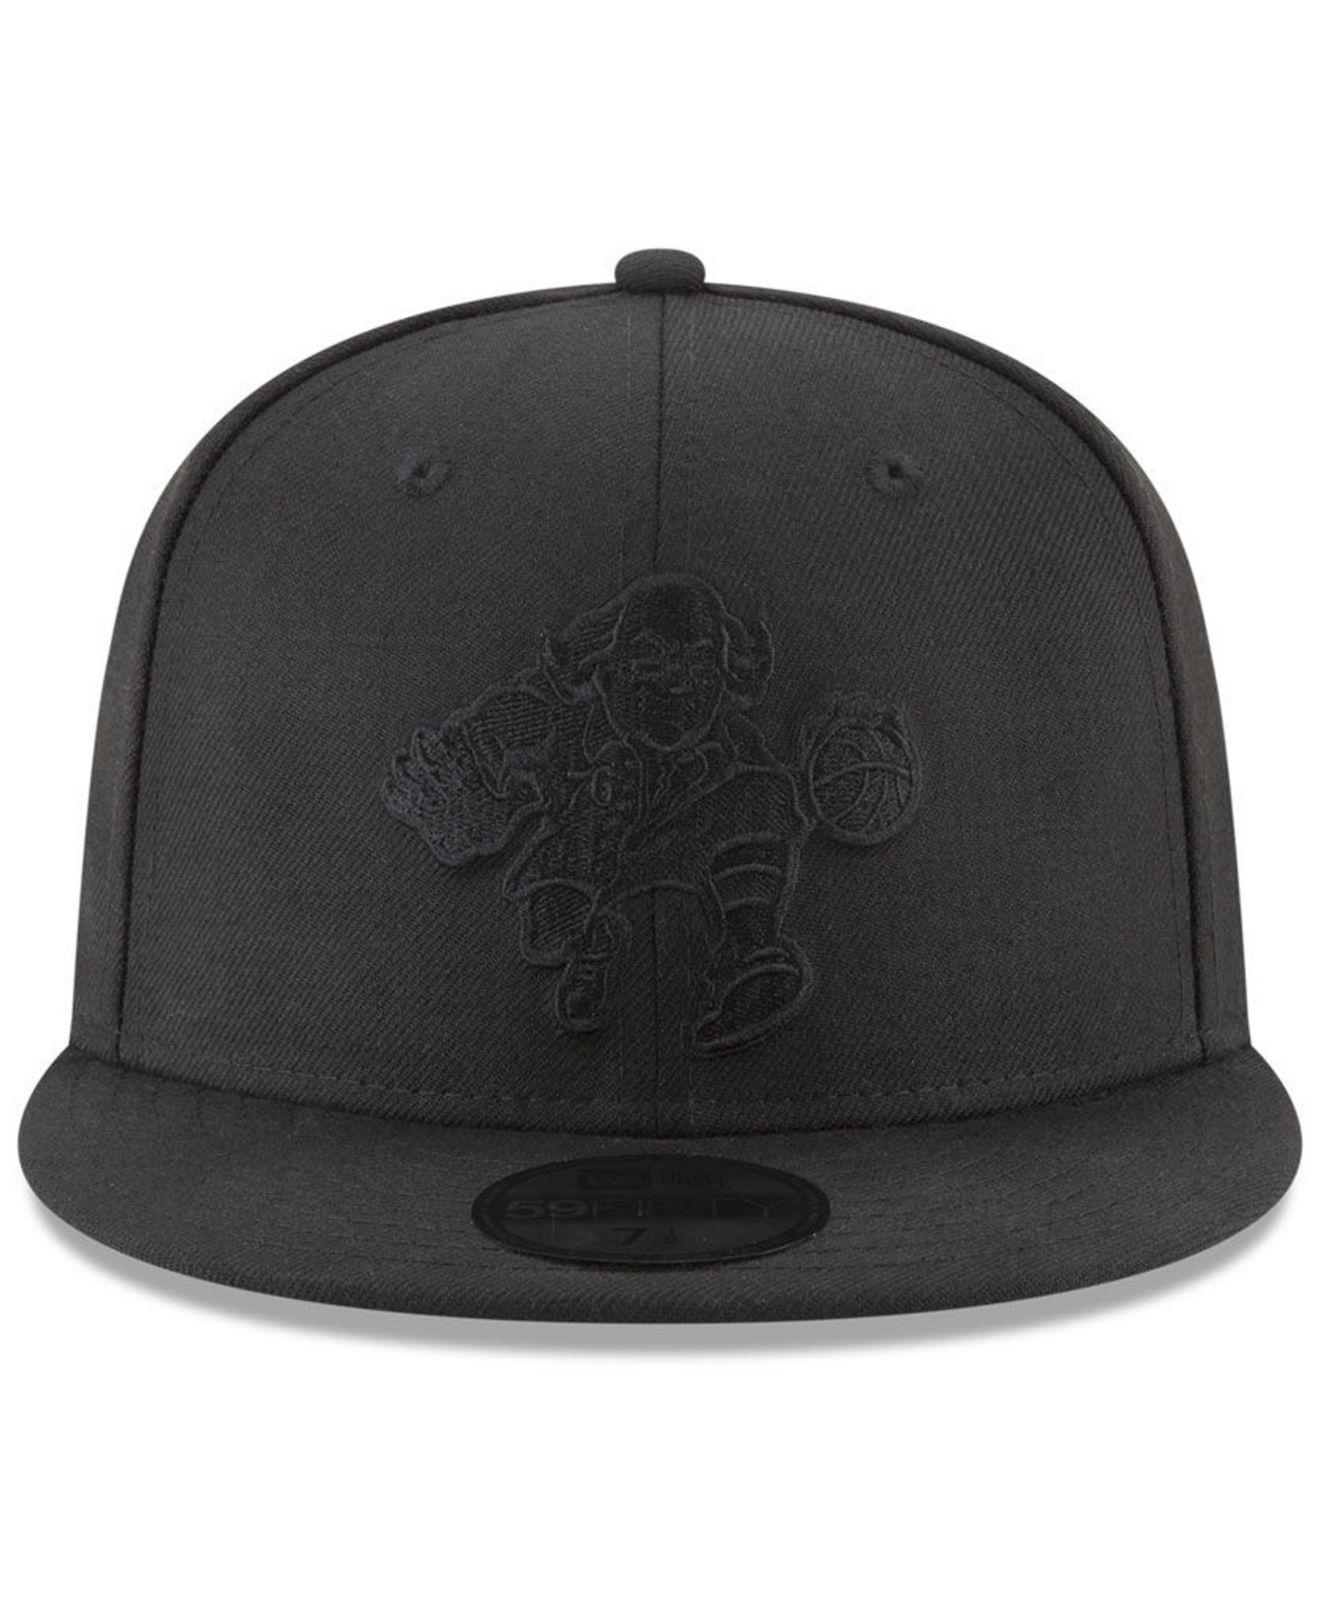 low cost cb72d 188c6 Lyst - KTZ Philadelphia 76ers Blackout 59fifty Fitted Cap in Black for Men